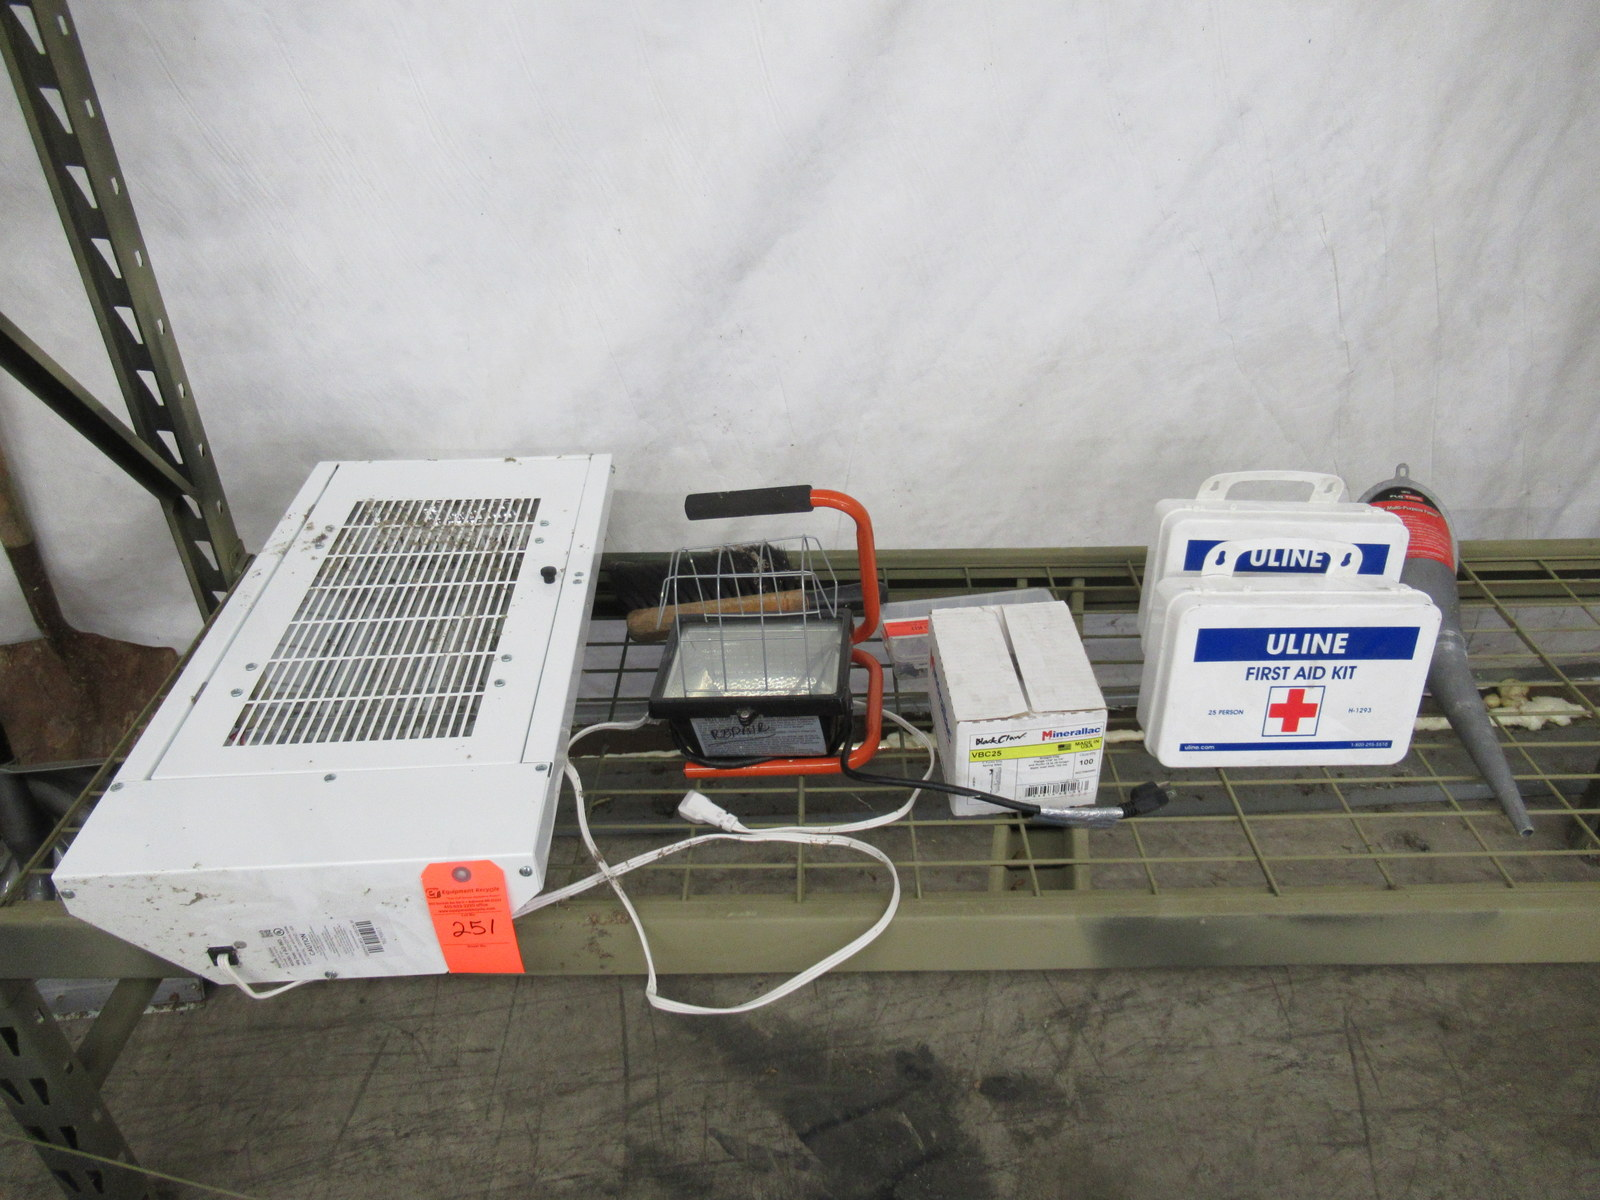 Lot 251 - Bug Light, Industrial Light, First Aid Kits, and more